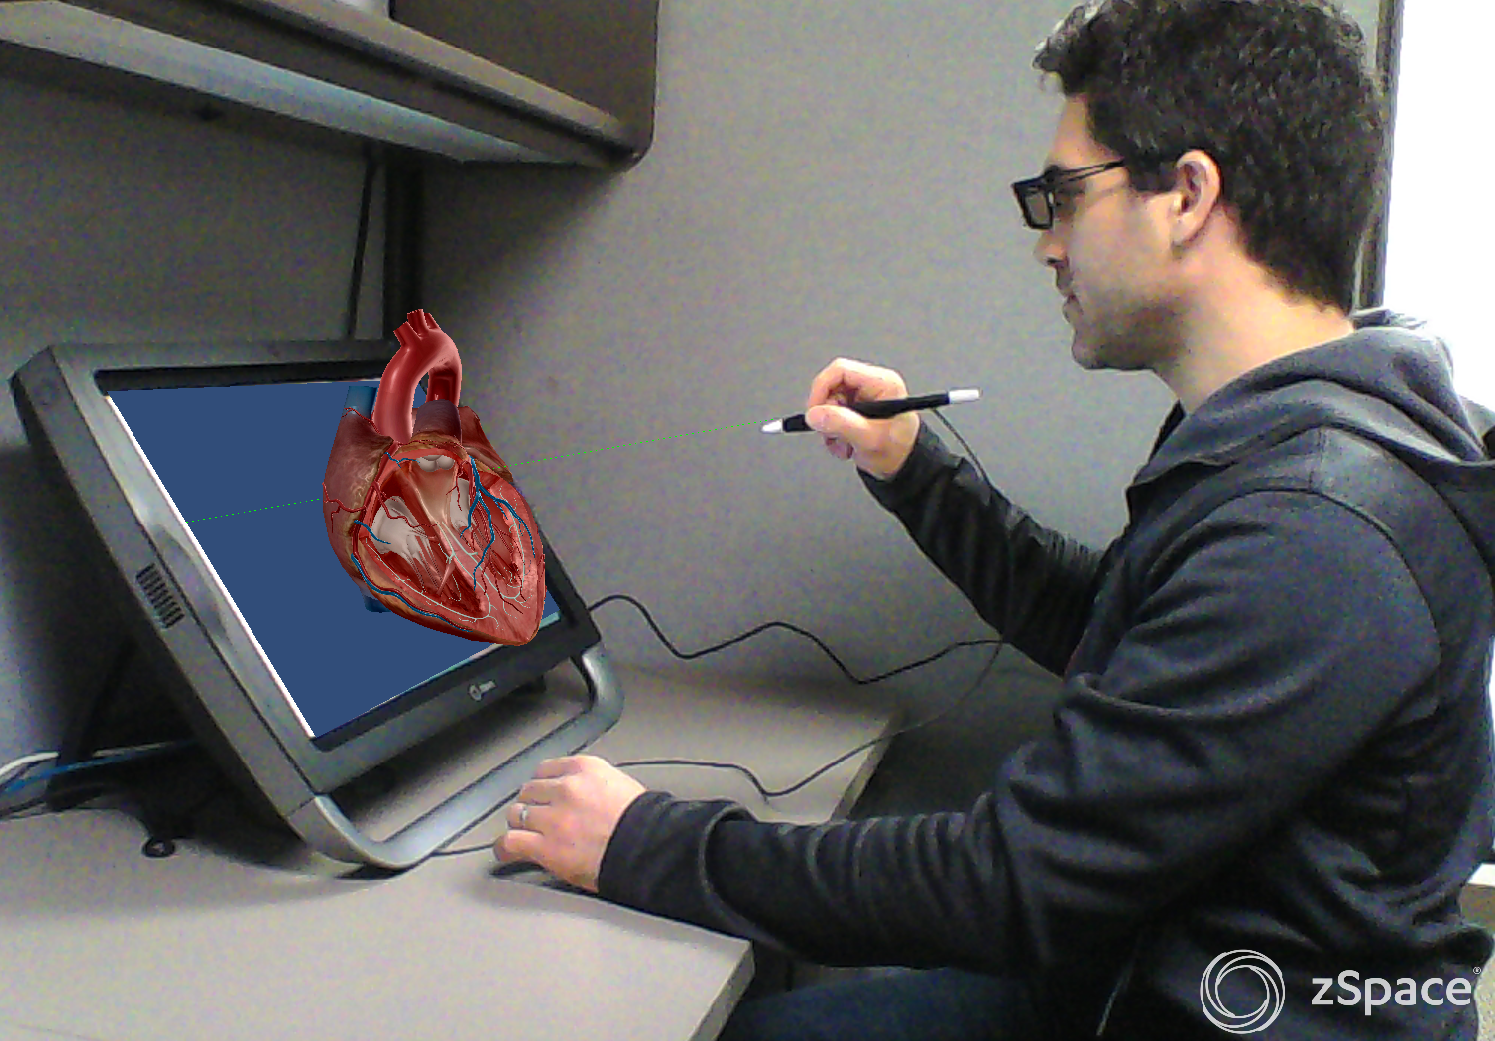 1895e1c14271 Human Anatomy Comes to Life in 3D Through New Partnership Between Visible  Body and zSpace Announced at ISTE 2016